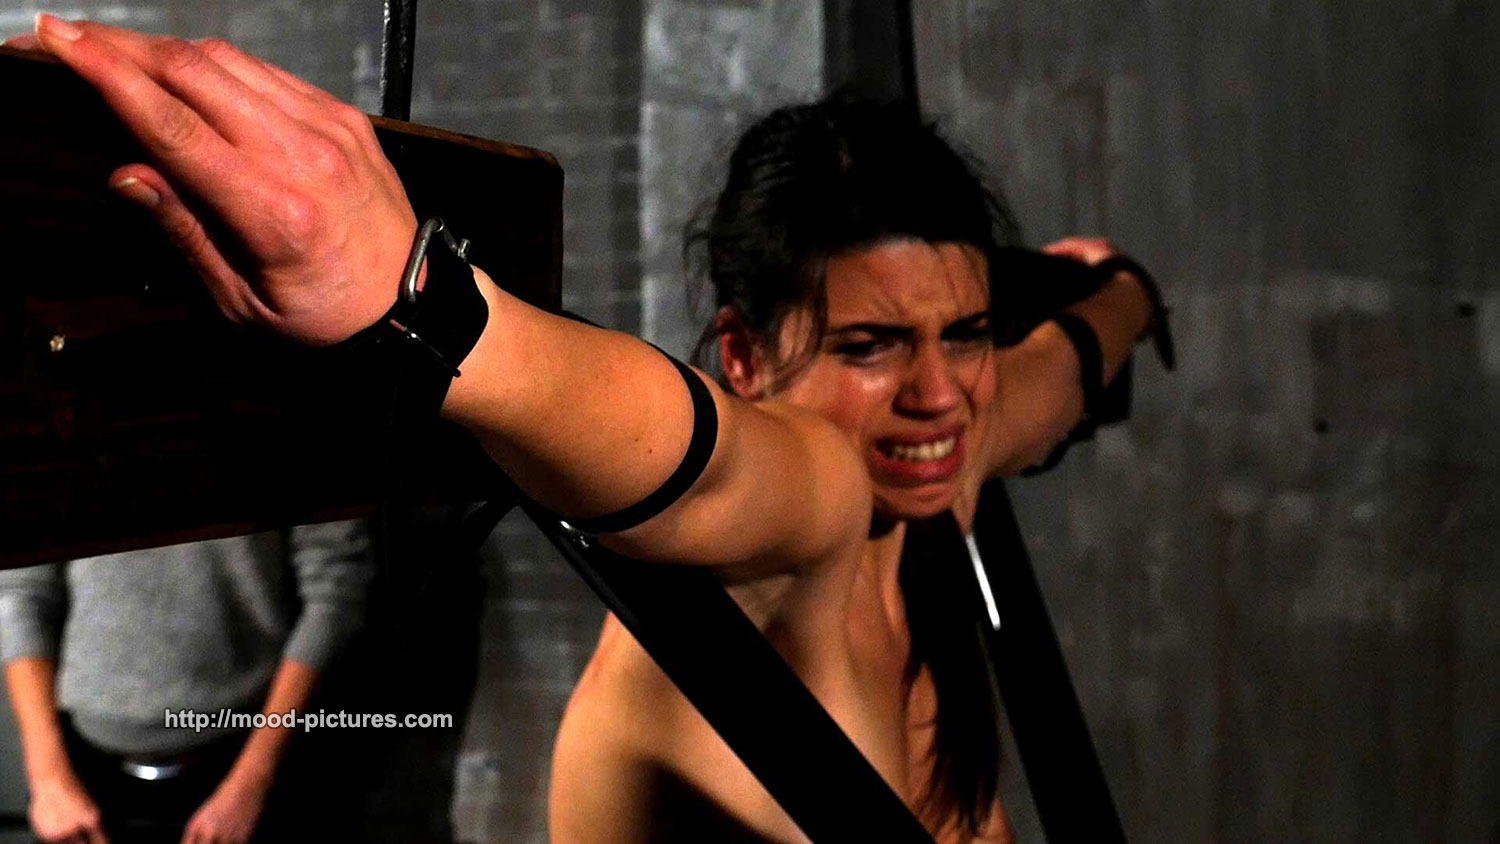 Money slave being punished by mistress pov rp - 3 5